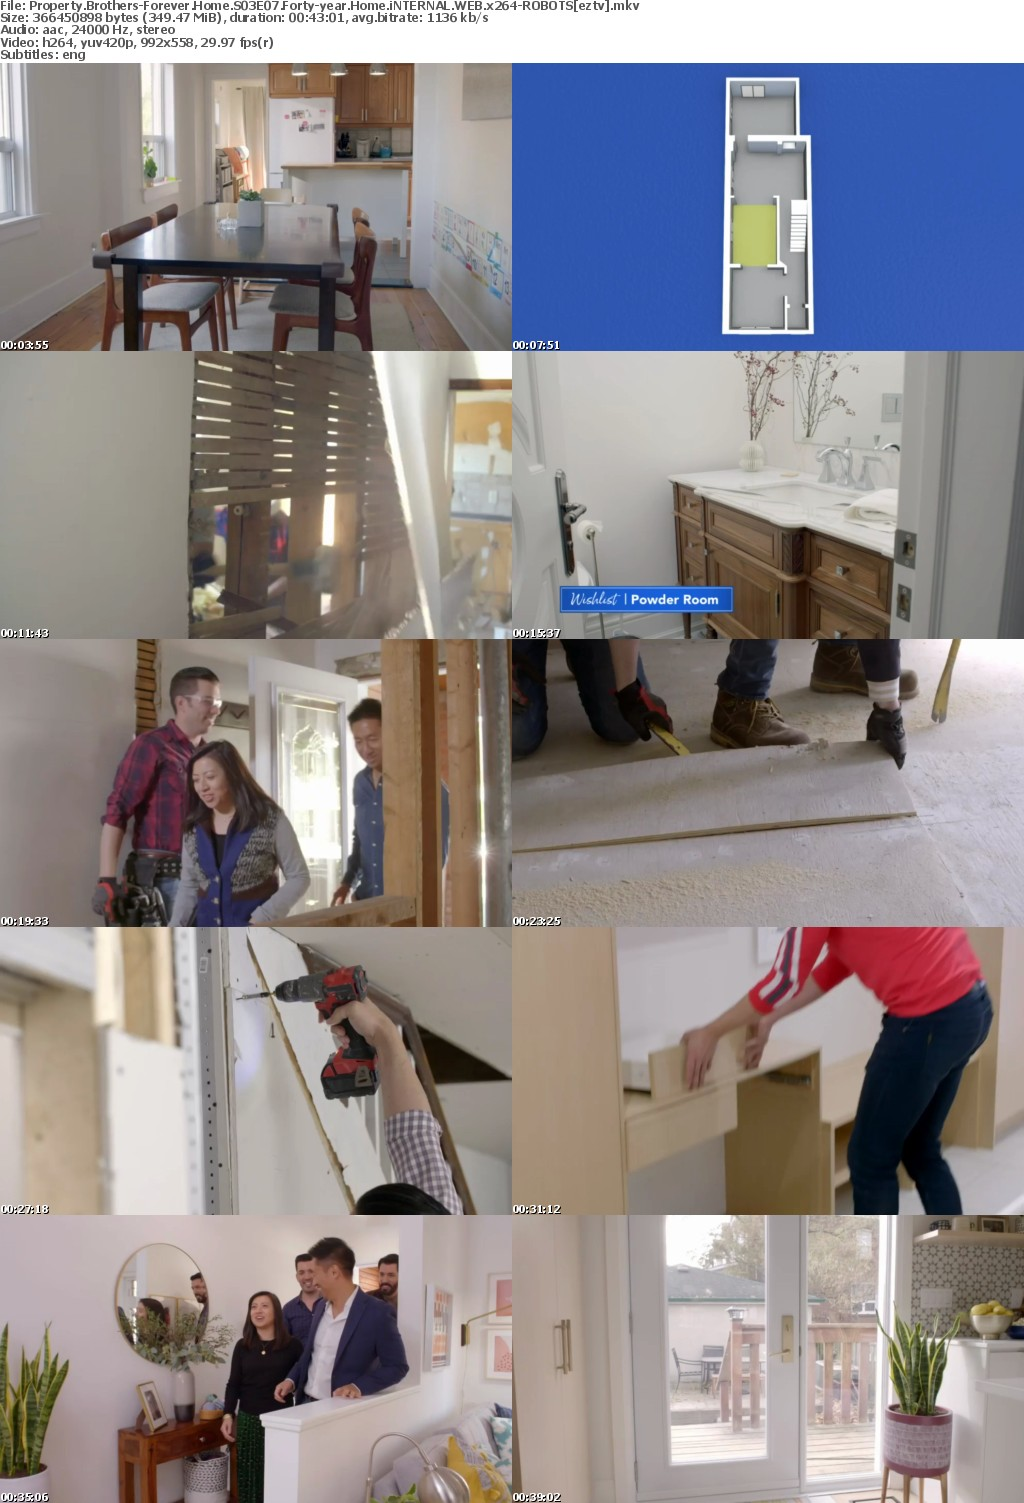 Property Brothers-Forever Home S03E07 Forty-year Home iNTERNAL WEB x264-ROBOTS